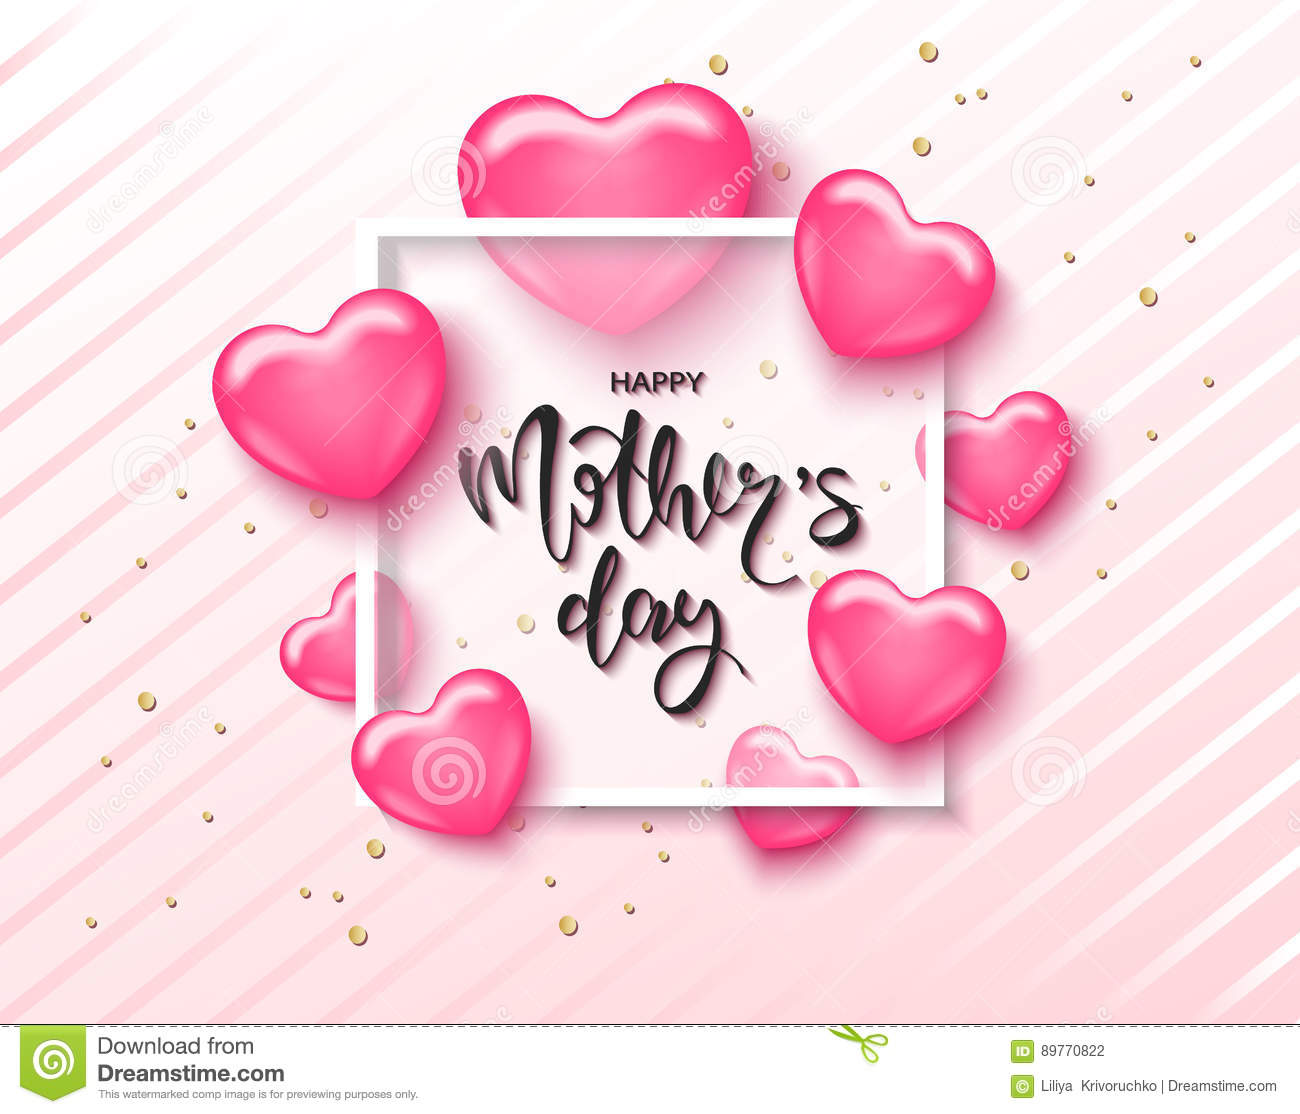 Mothers Day Storewide Sale Template: Happy Mothers Day Card Template With Cute Pink Heart With